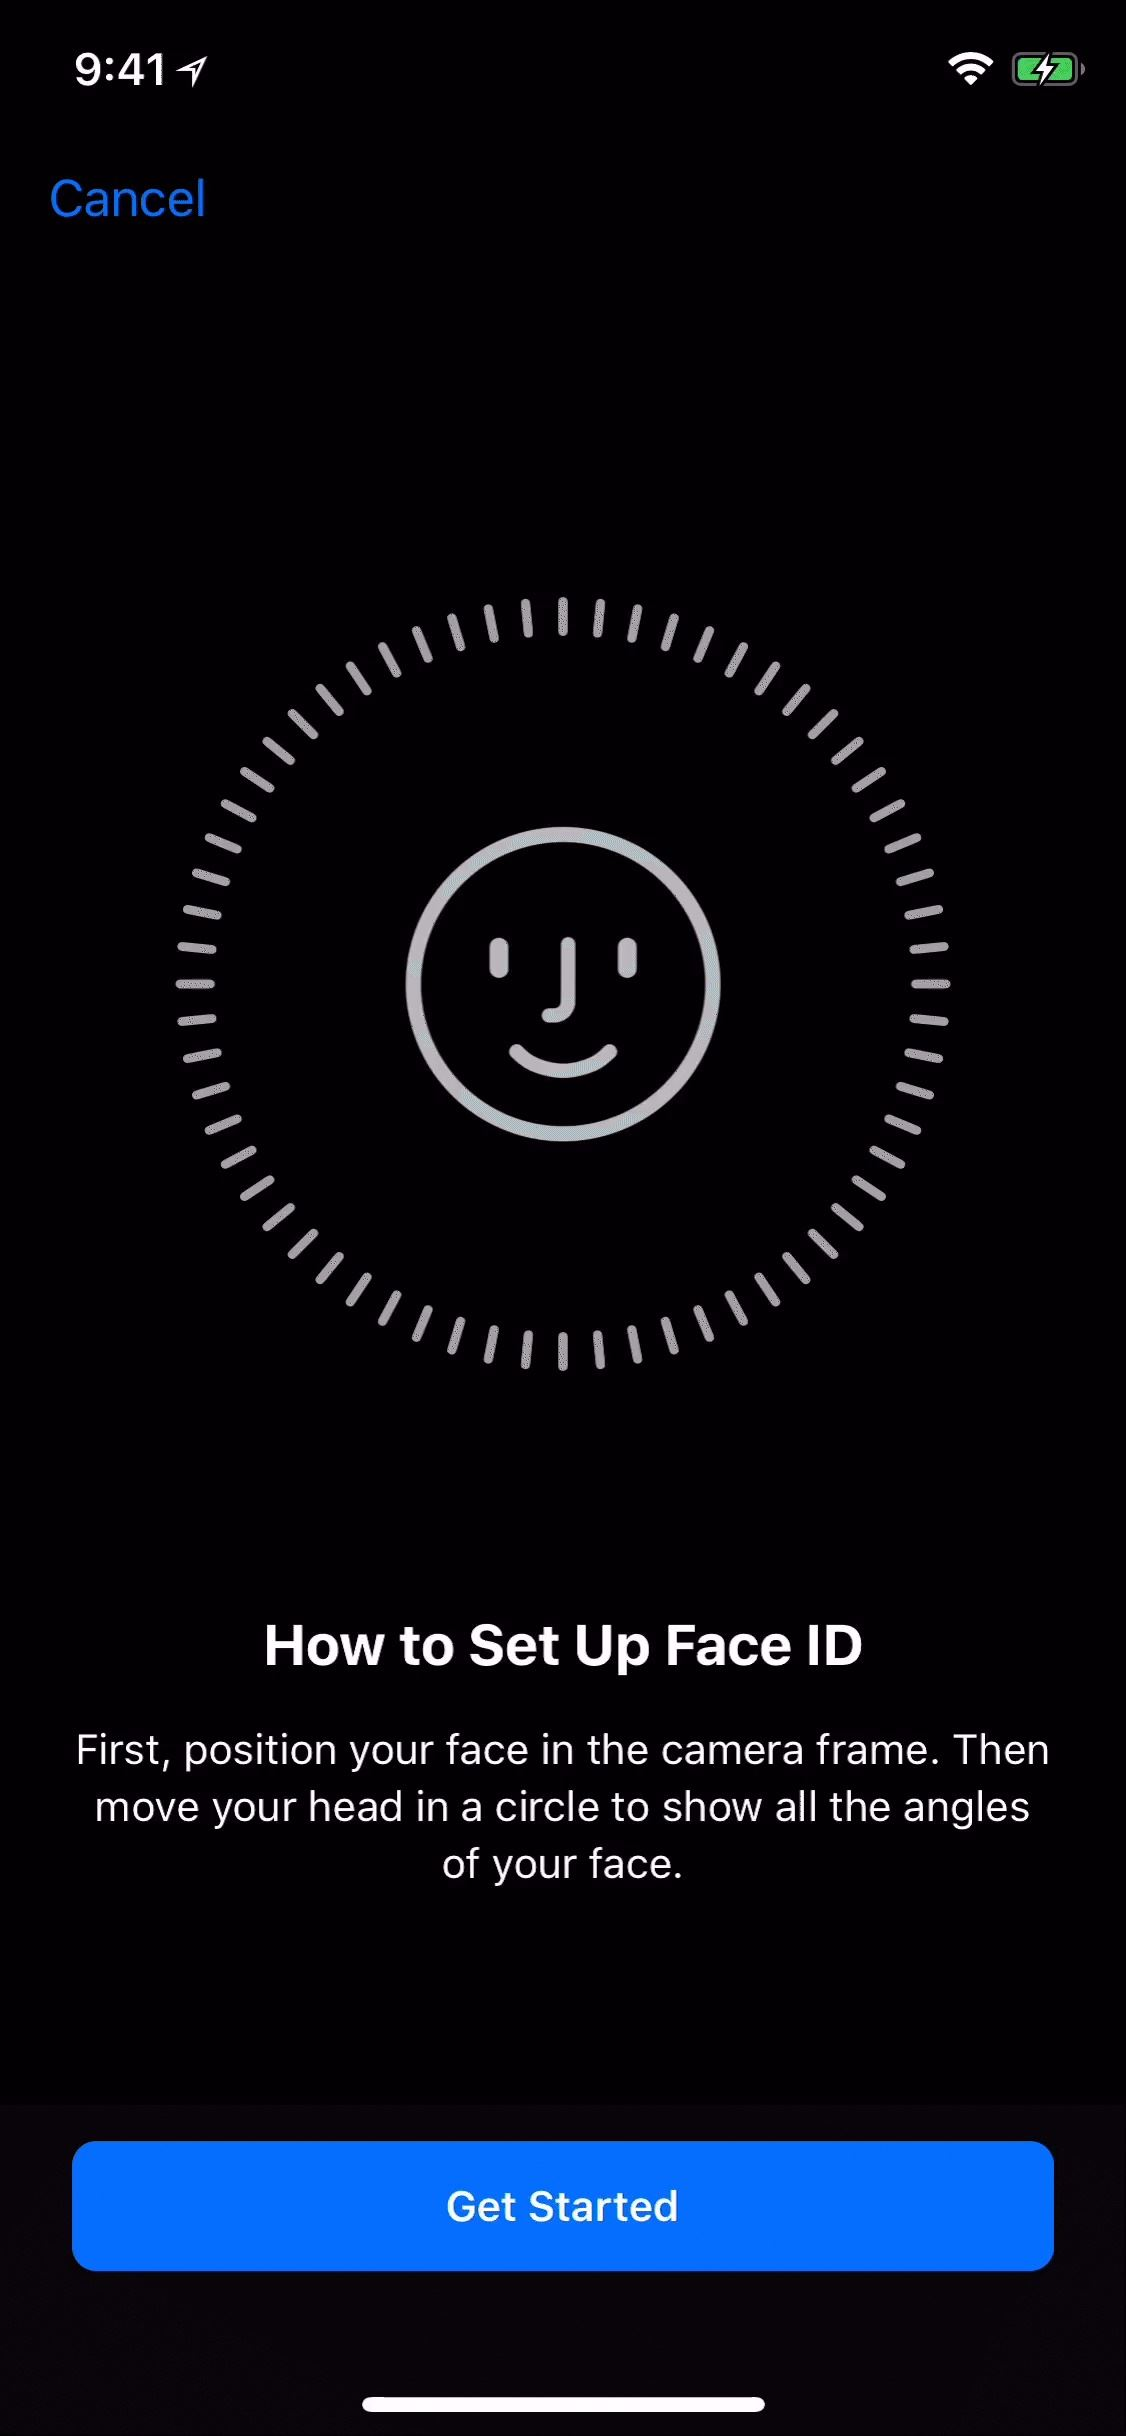 How To Register A Second Face ID Search On Your iPhone In iOS 12